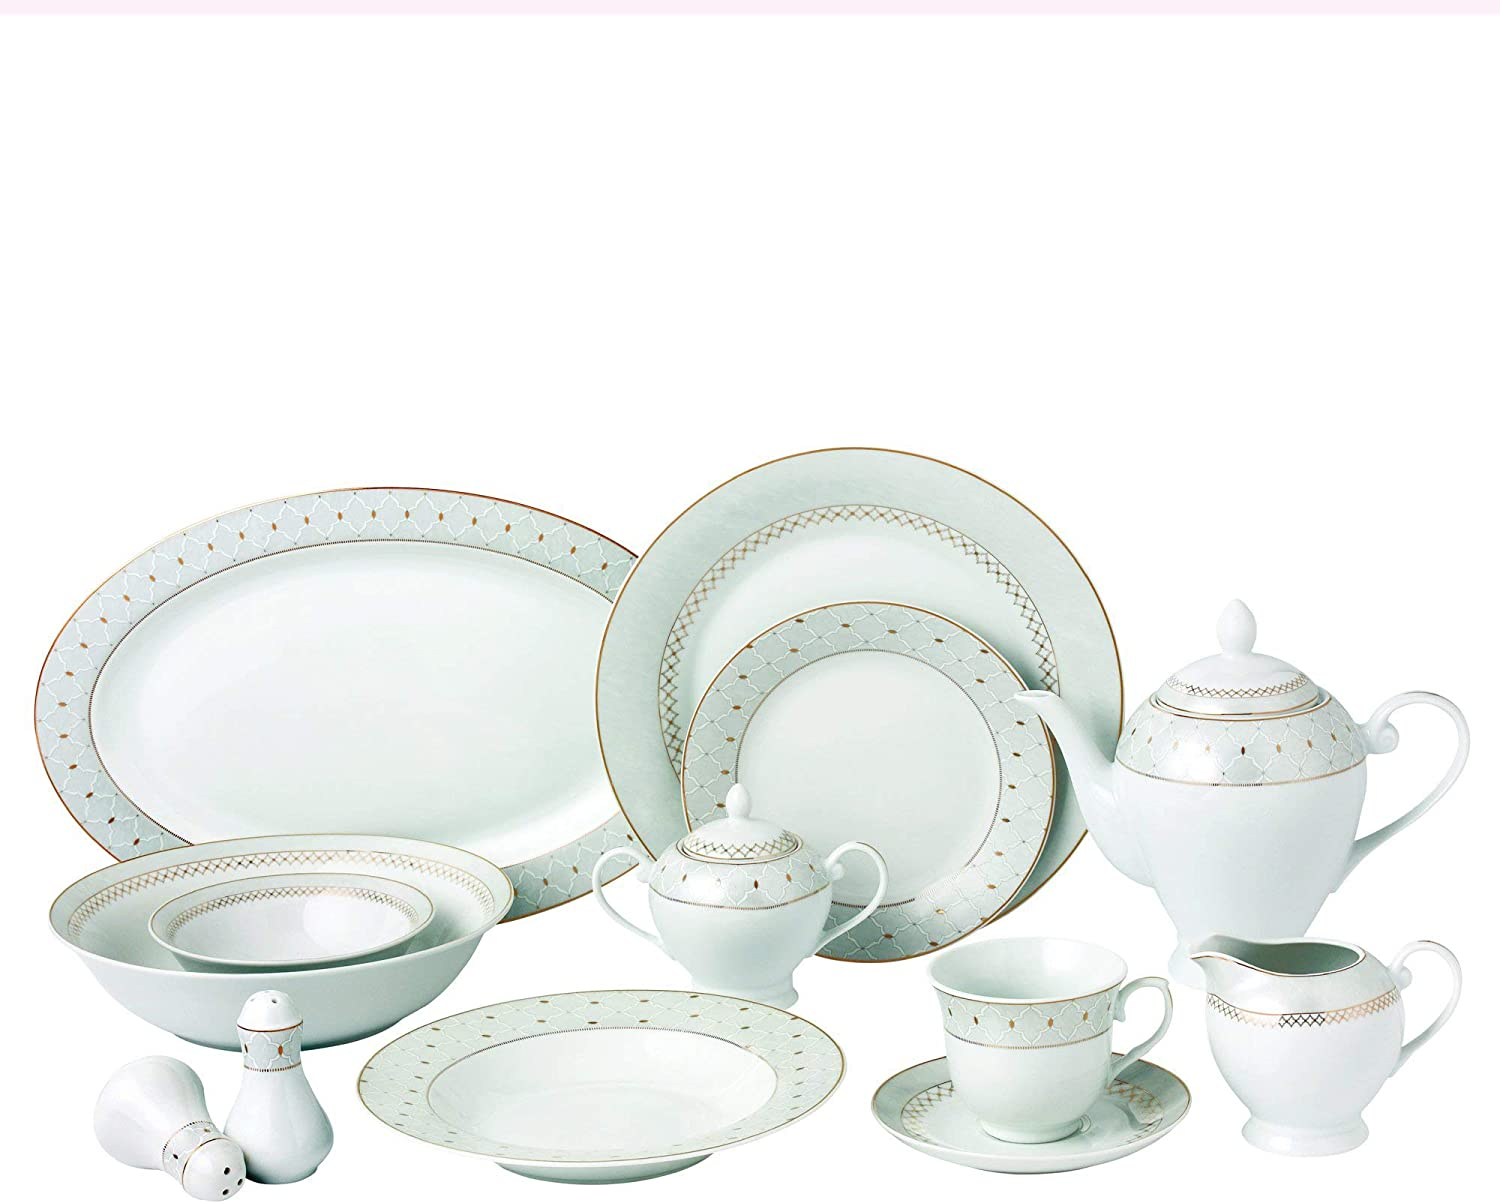 Lorren Home Trends Carlotta-57 57 Piece Silver Border Porcelain Dinnerware Set-Service for 8-Carlotta-Mix and Match, One Size, White